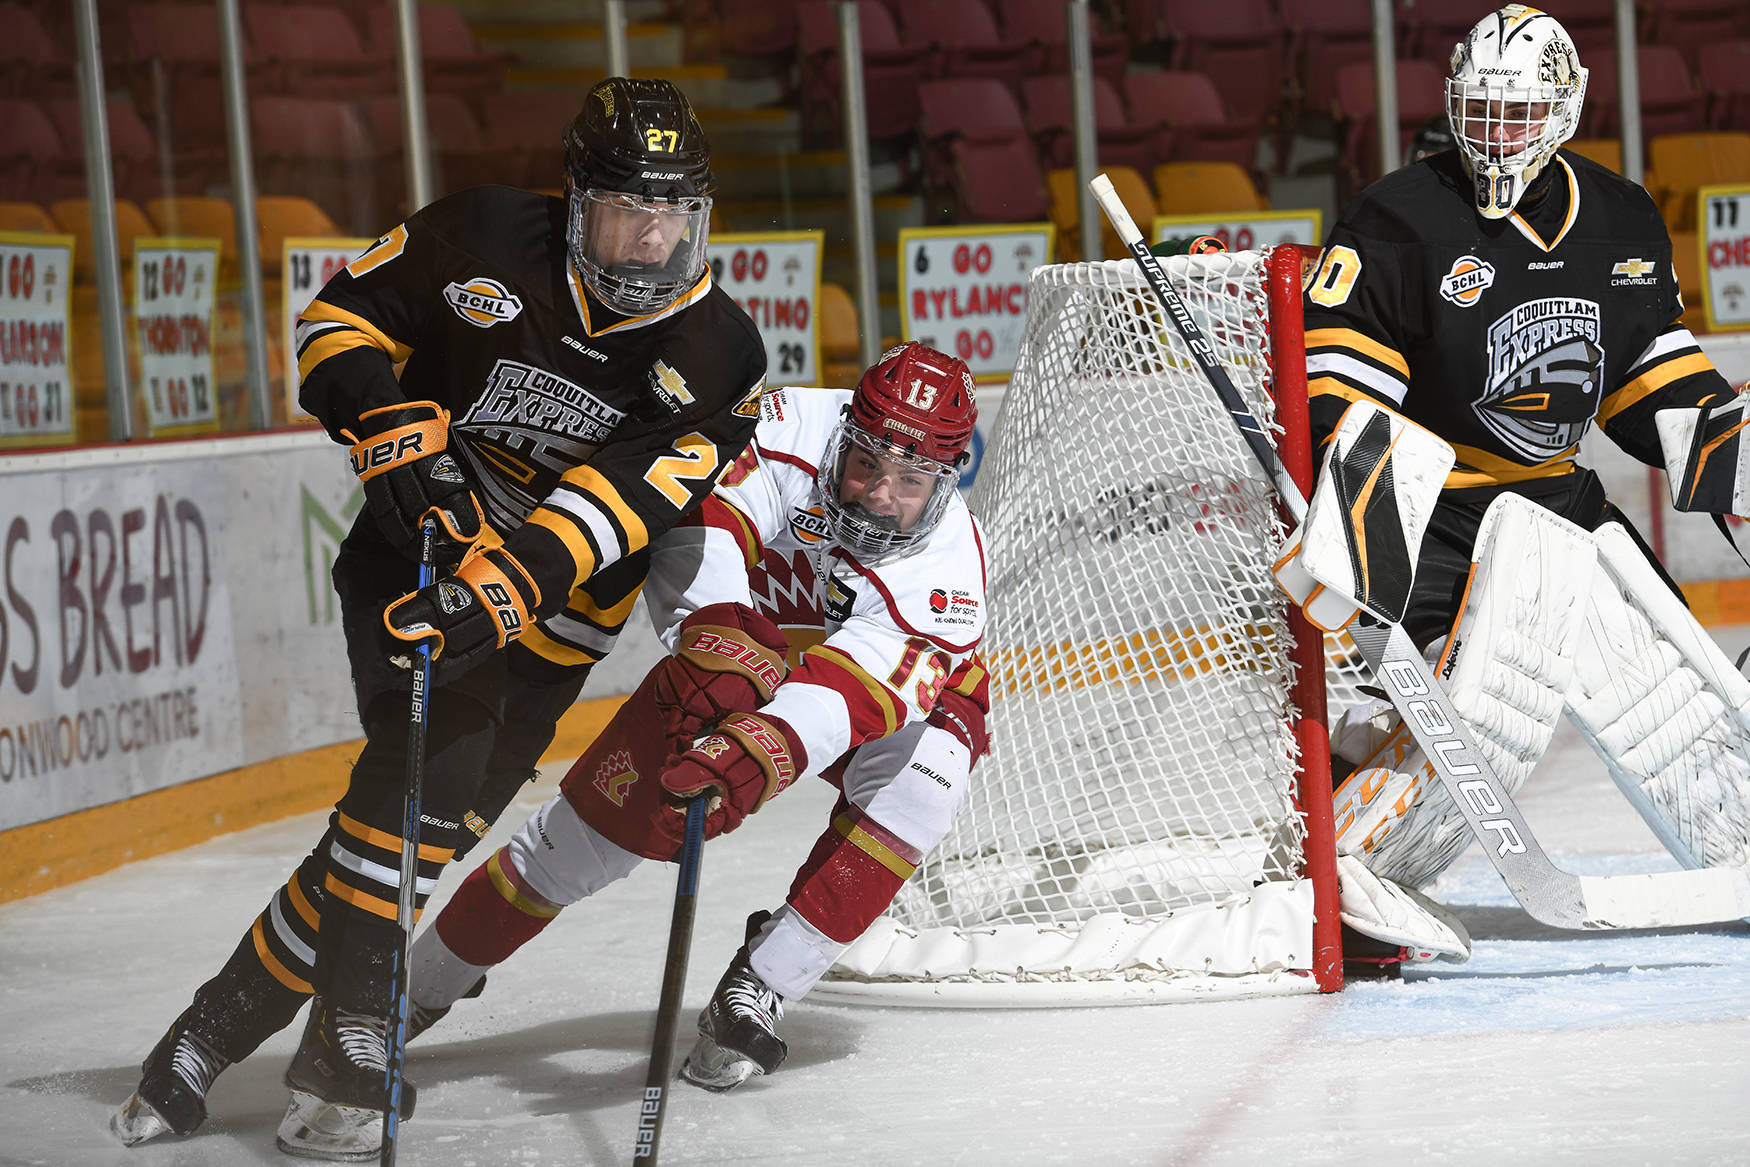 The Chilliwack Chiefs and Coquitlam Express will finally play games in early April as the BCHL squeezes in a shortened 20 game season. Just-announced provincial funding may help the junior A league offset financial losses caused by the COVID pandemic. (Darren Francis photo)